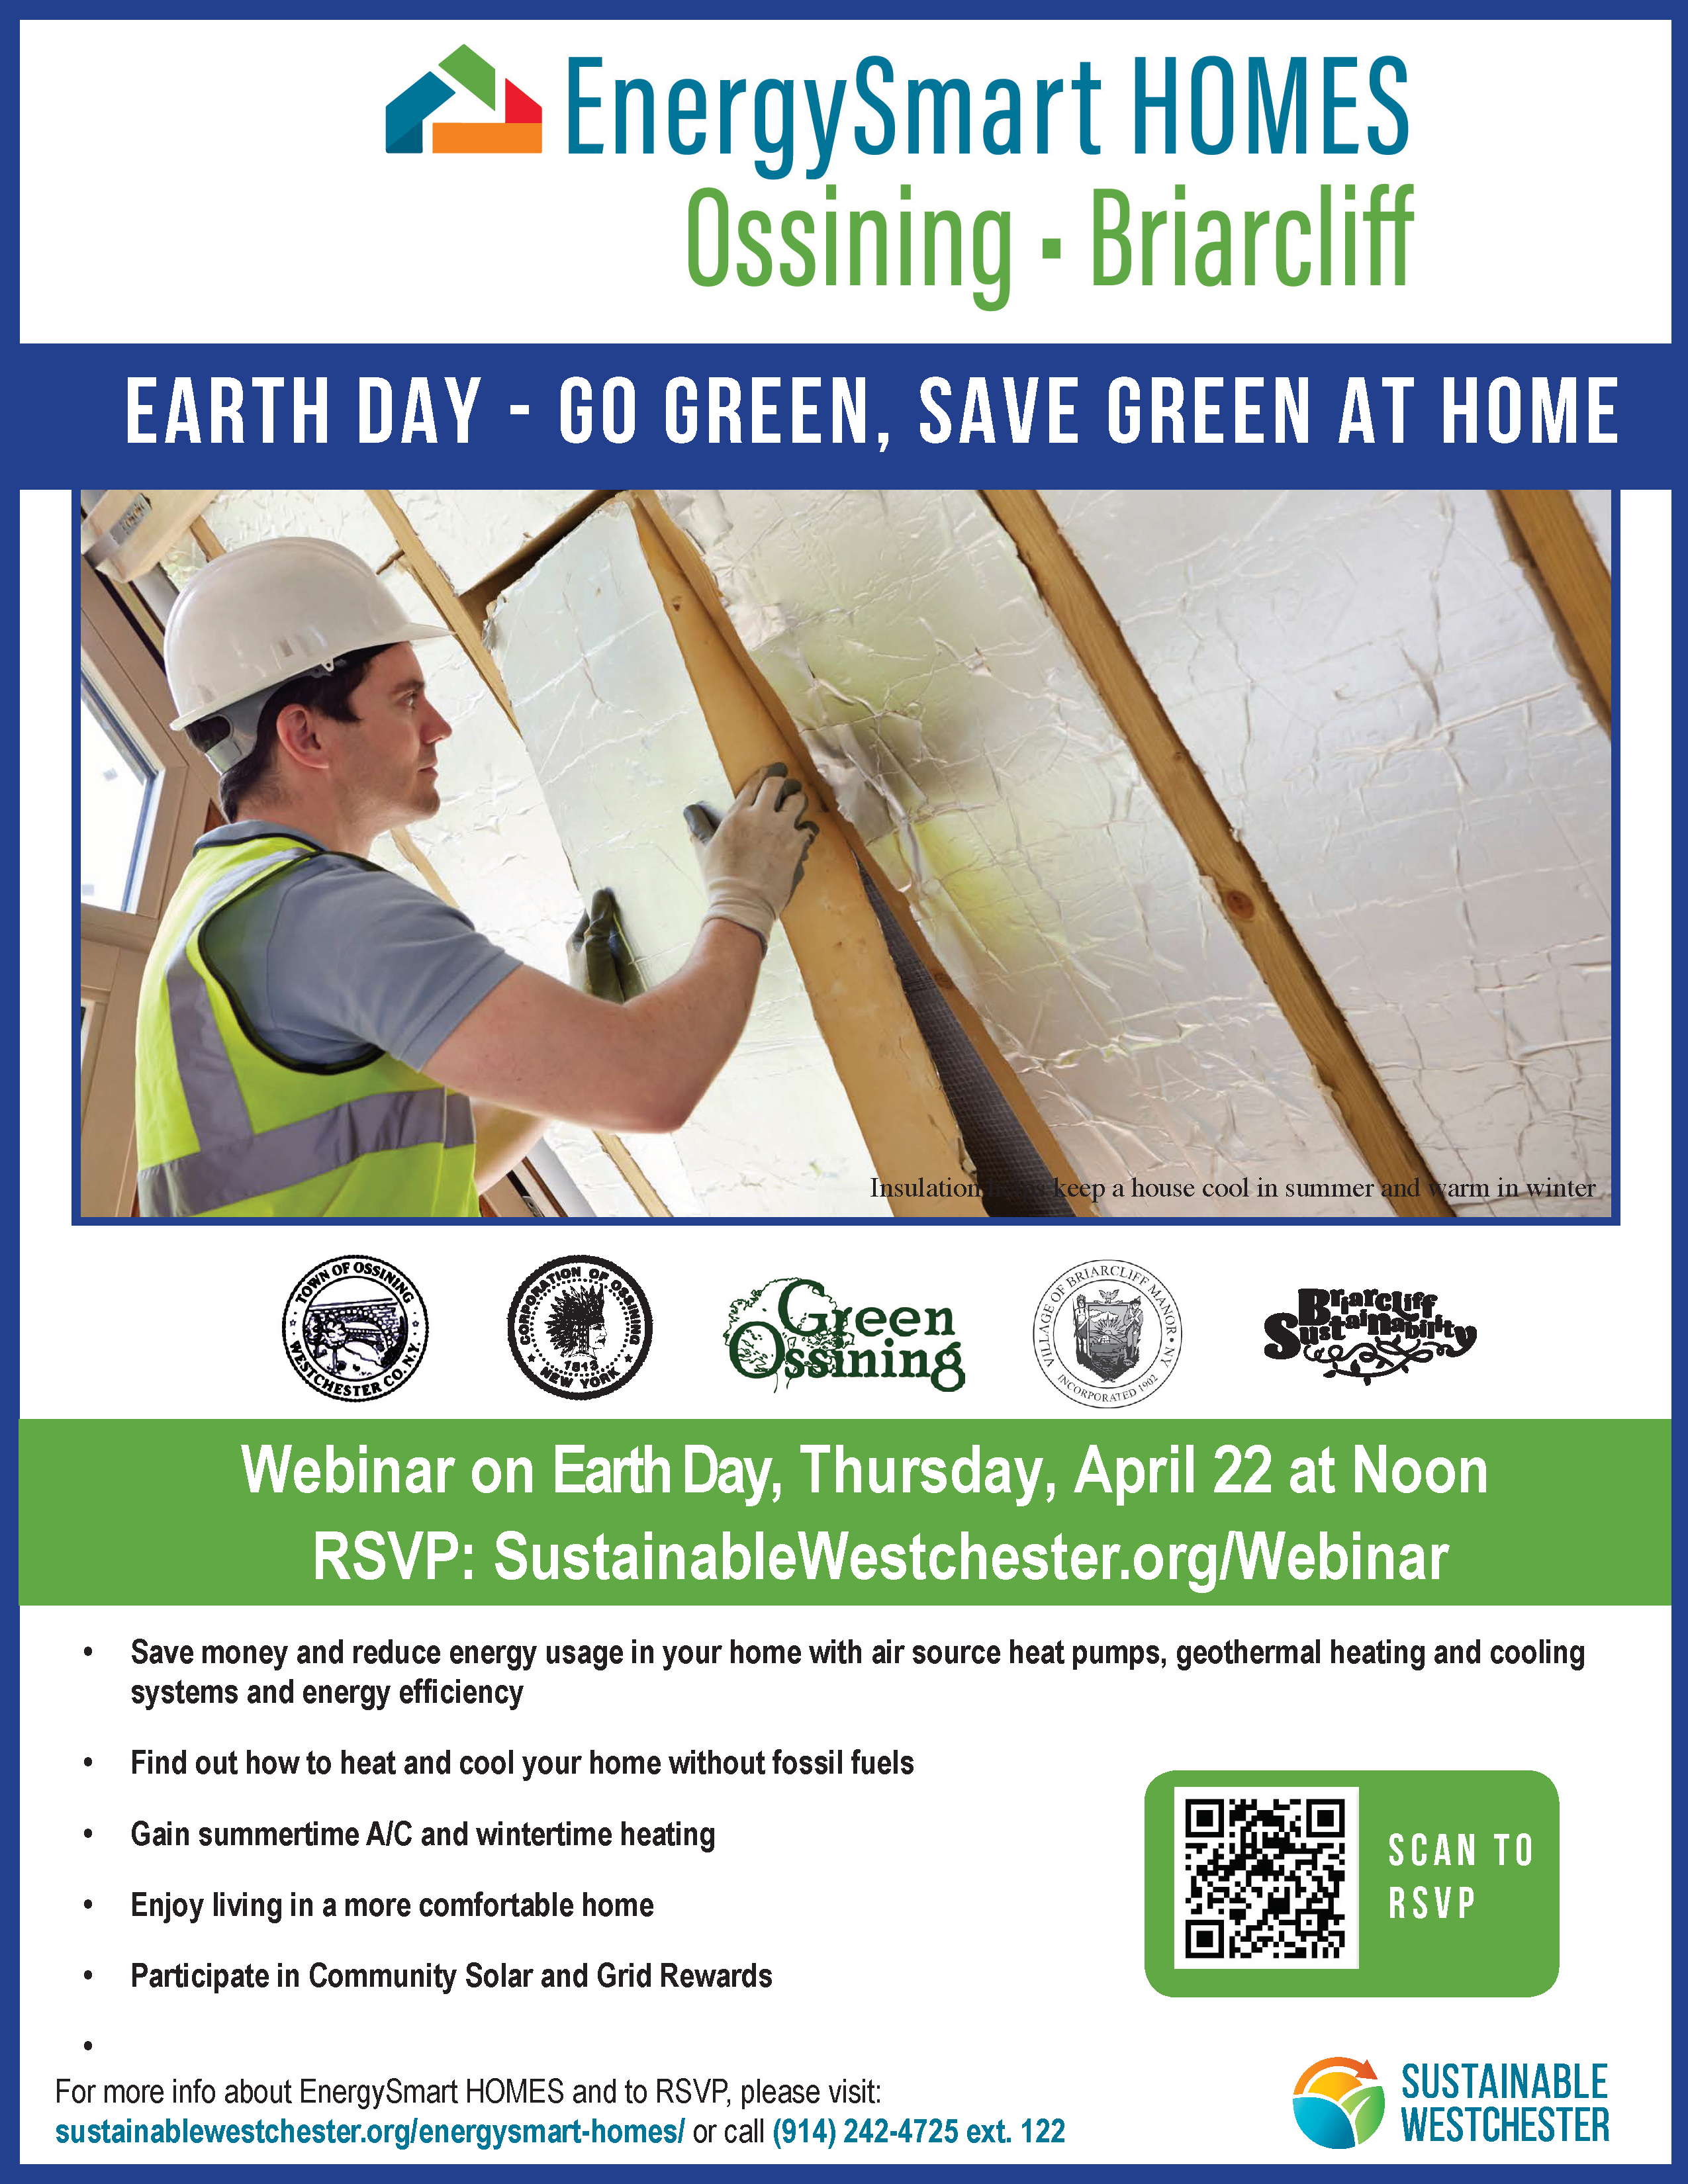 April 22, 12:00-12:45 Earth Day with Green Ossining and Briarcliff Sustainability <a class=